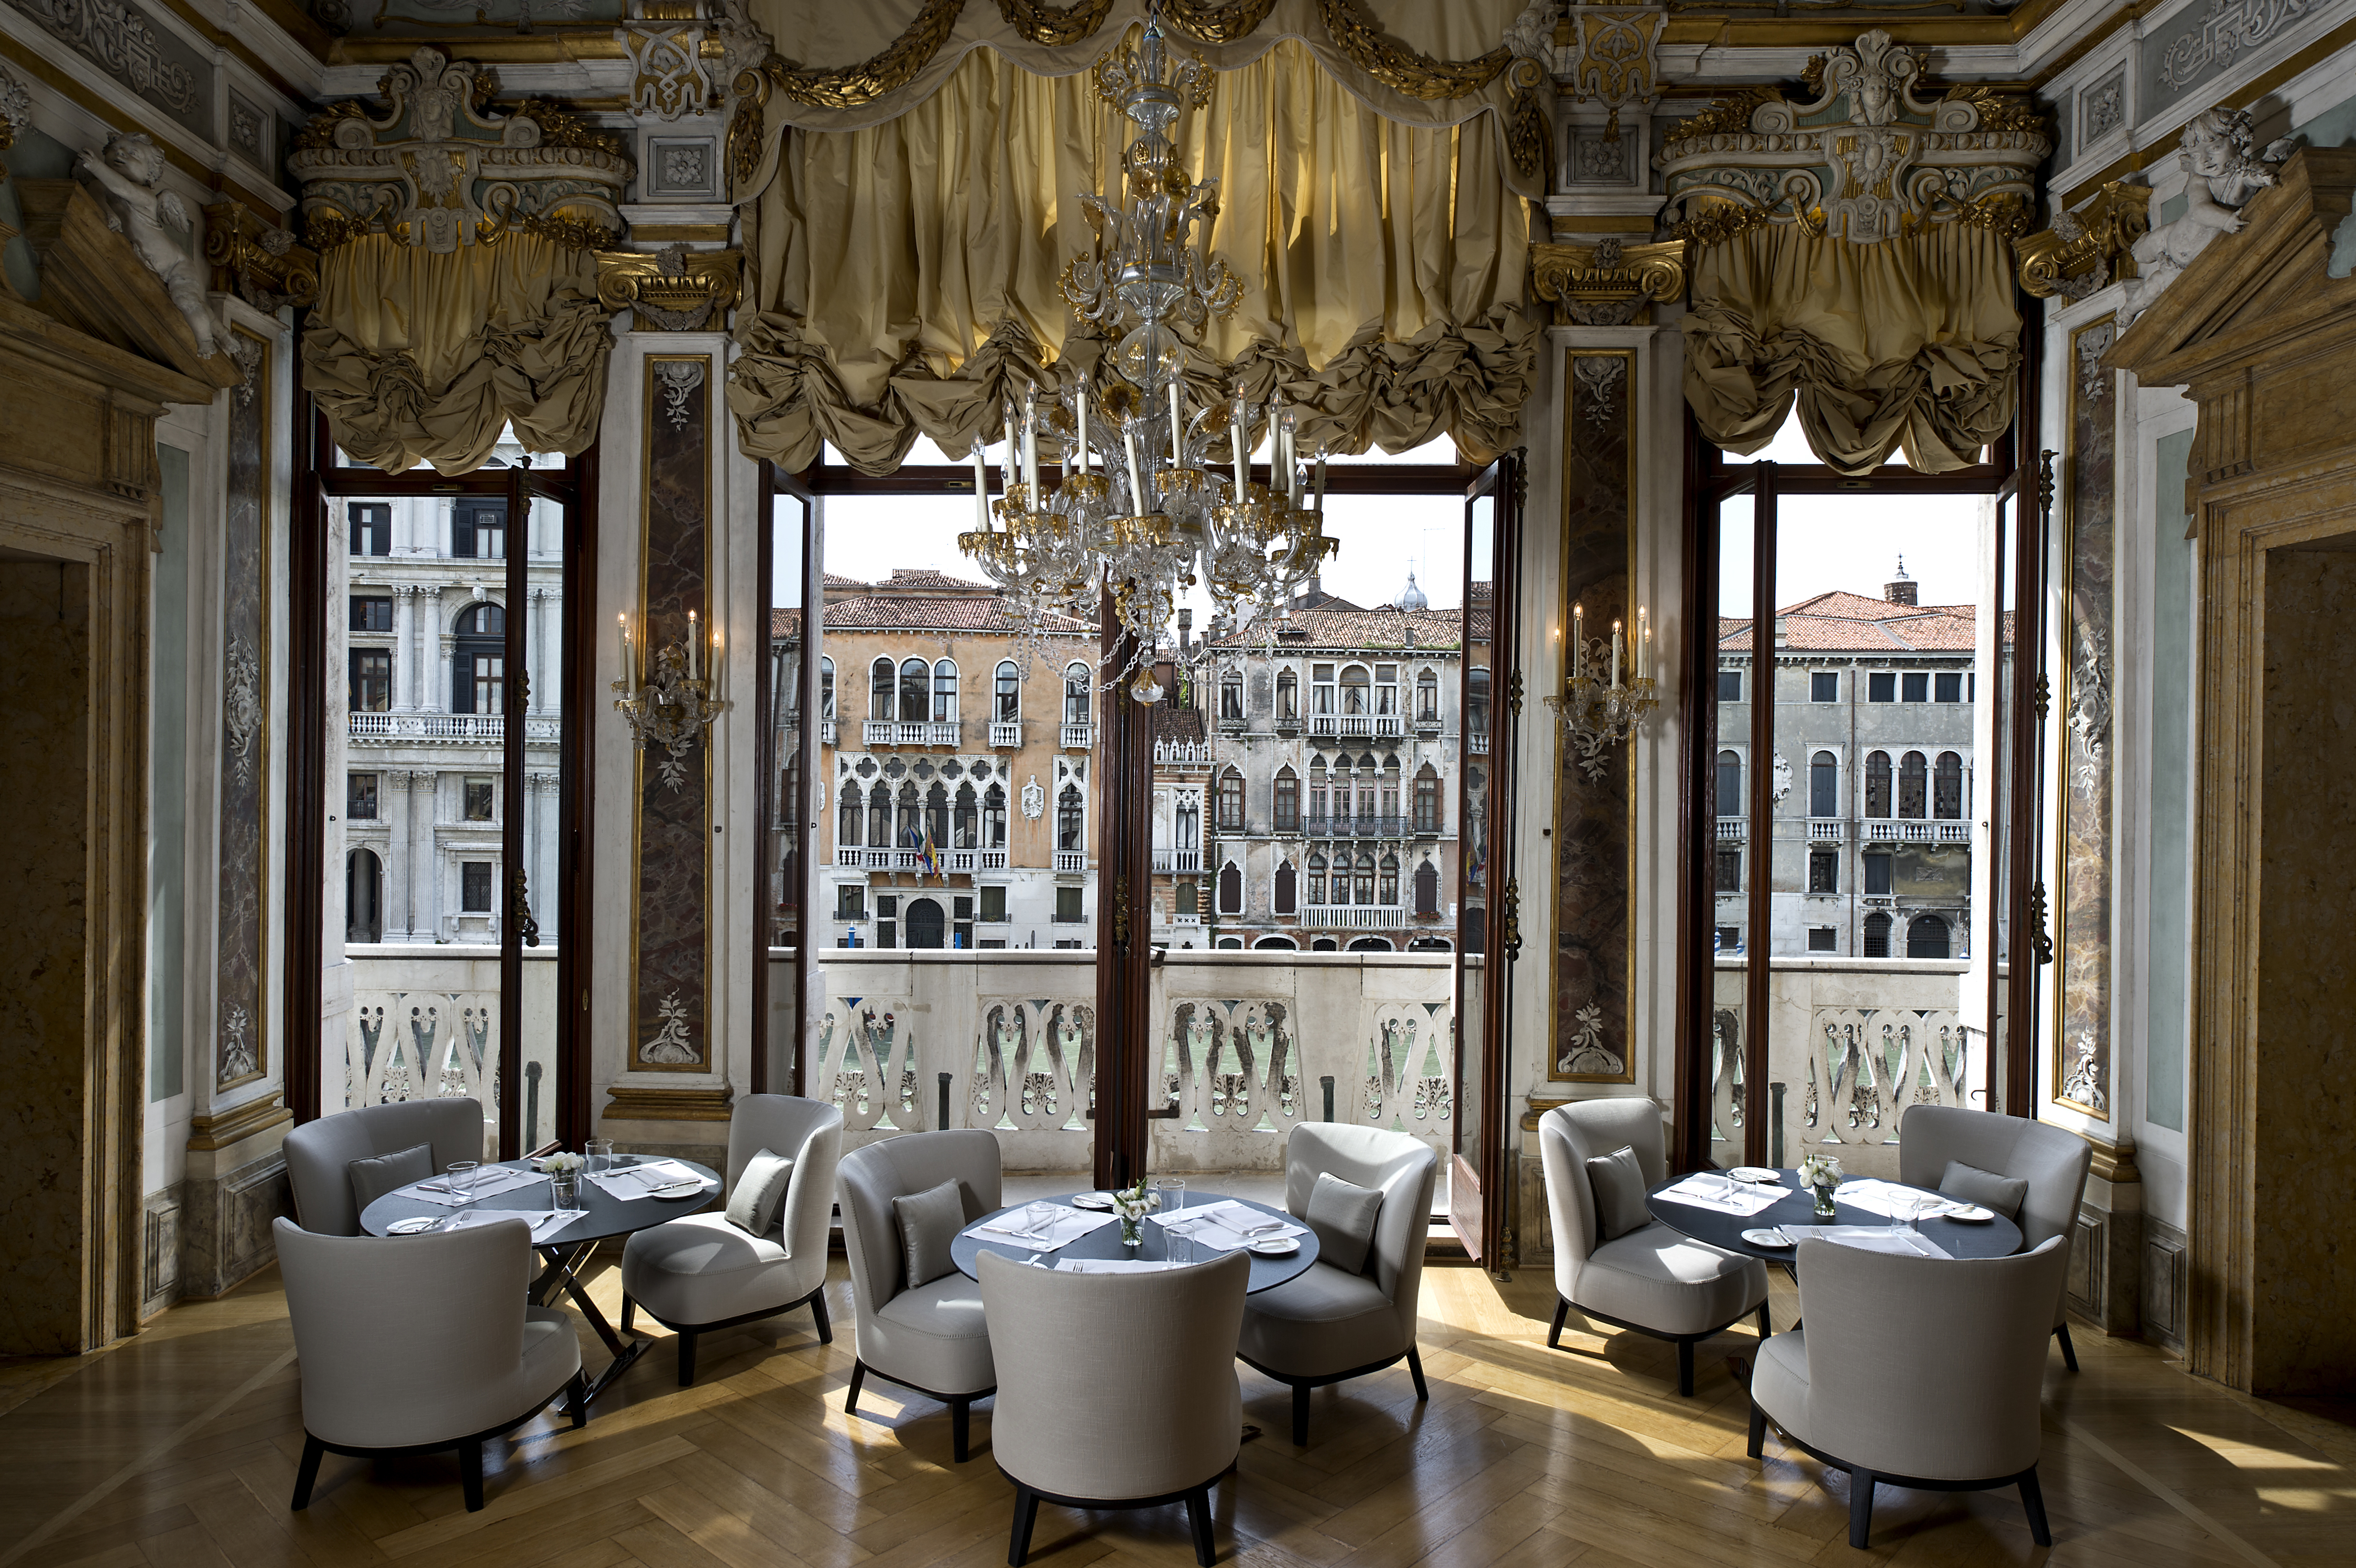 rs1930_aman-canal-grande-venice-piano-nobile-dining-room